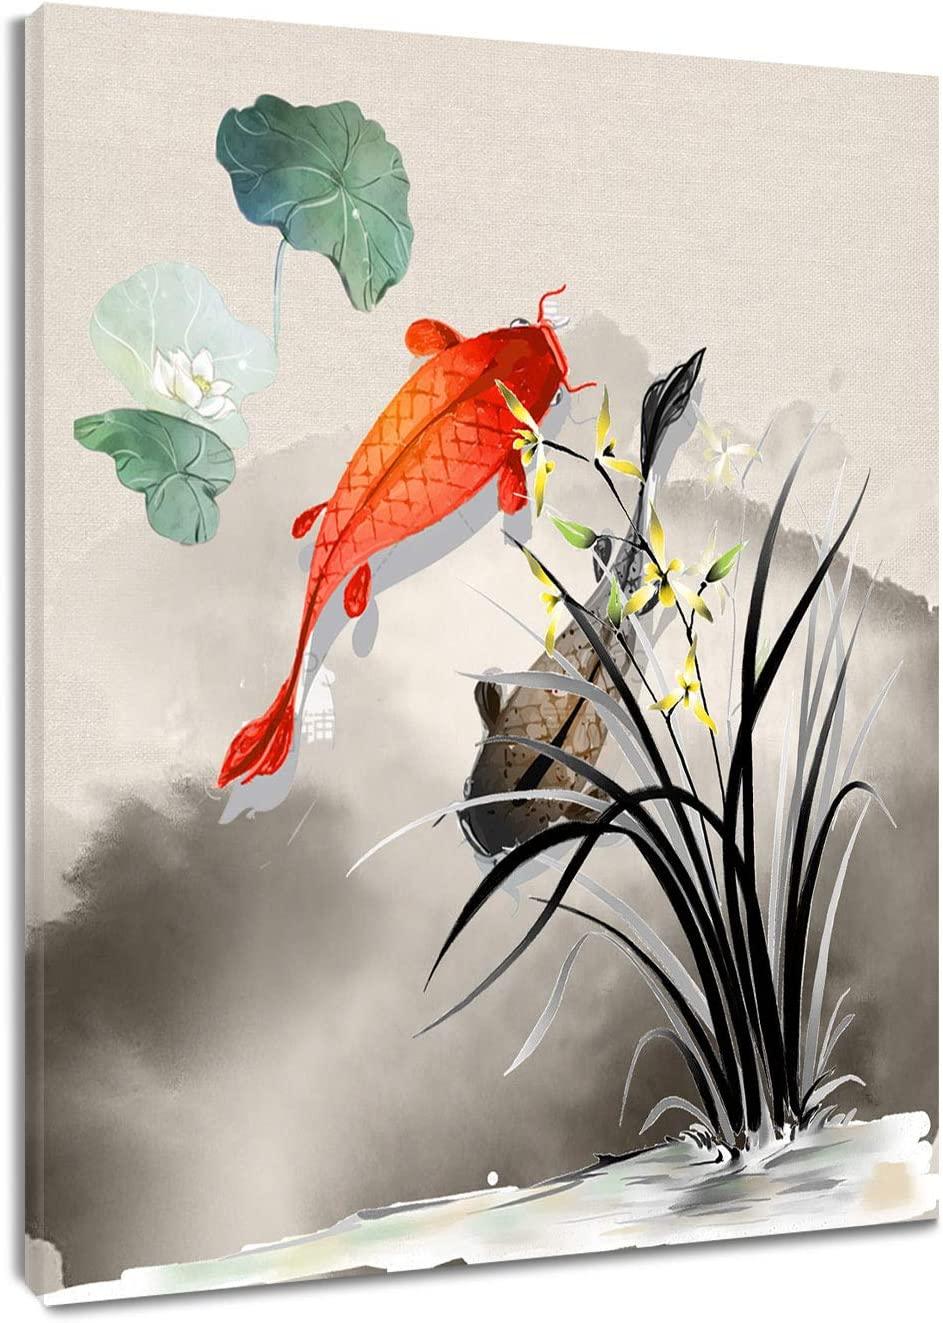 HVEST Fish Canvas Wall Art Koi in Lotus Pond Artwork Chinese Ink Painting for Living Room Bedroom Bathroom Wall Decor,Stretched and Framed Ready to Hang,12x16 inches